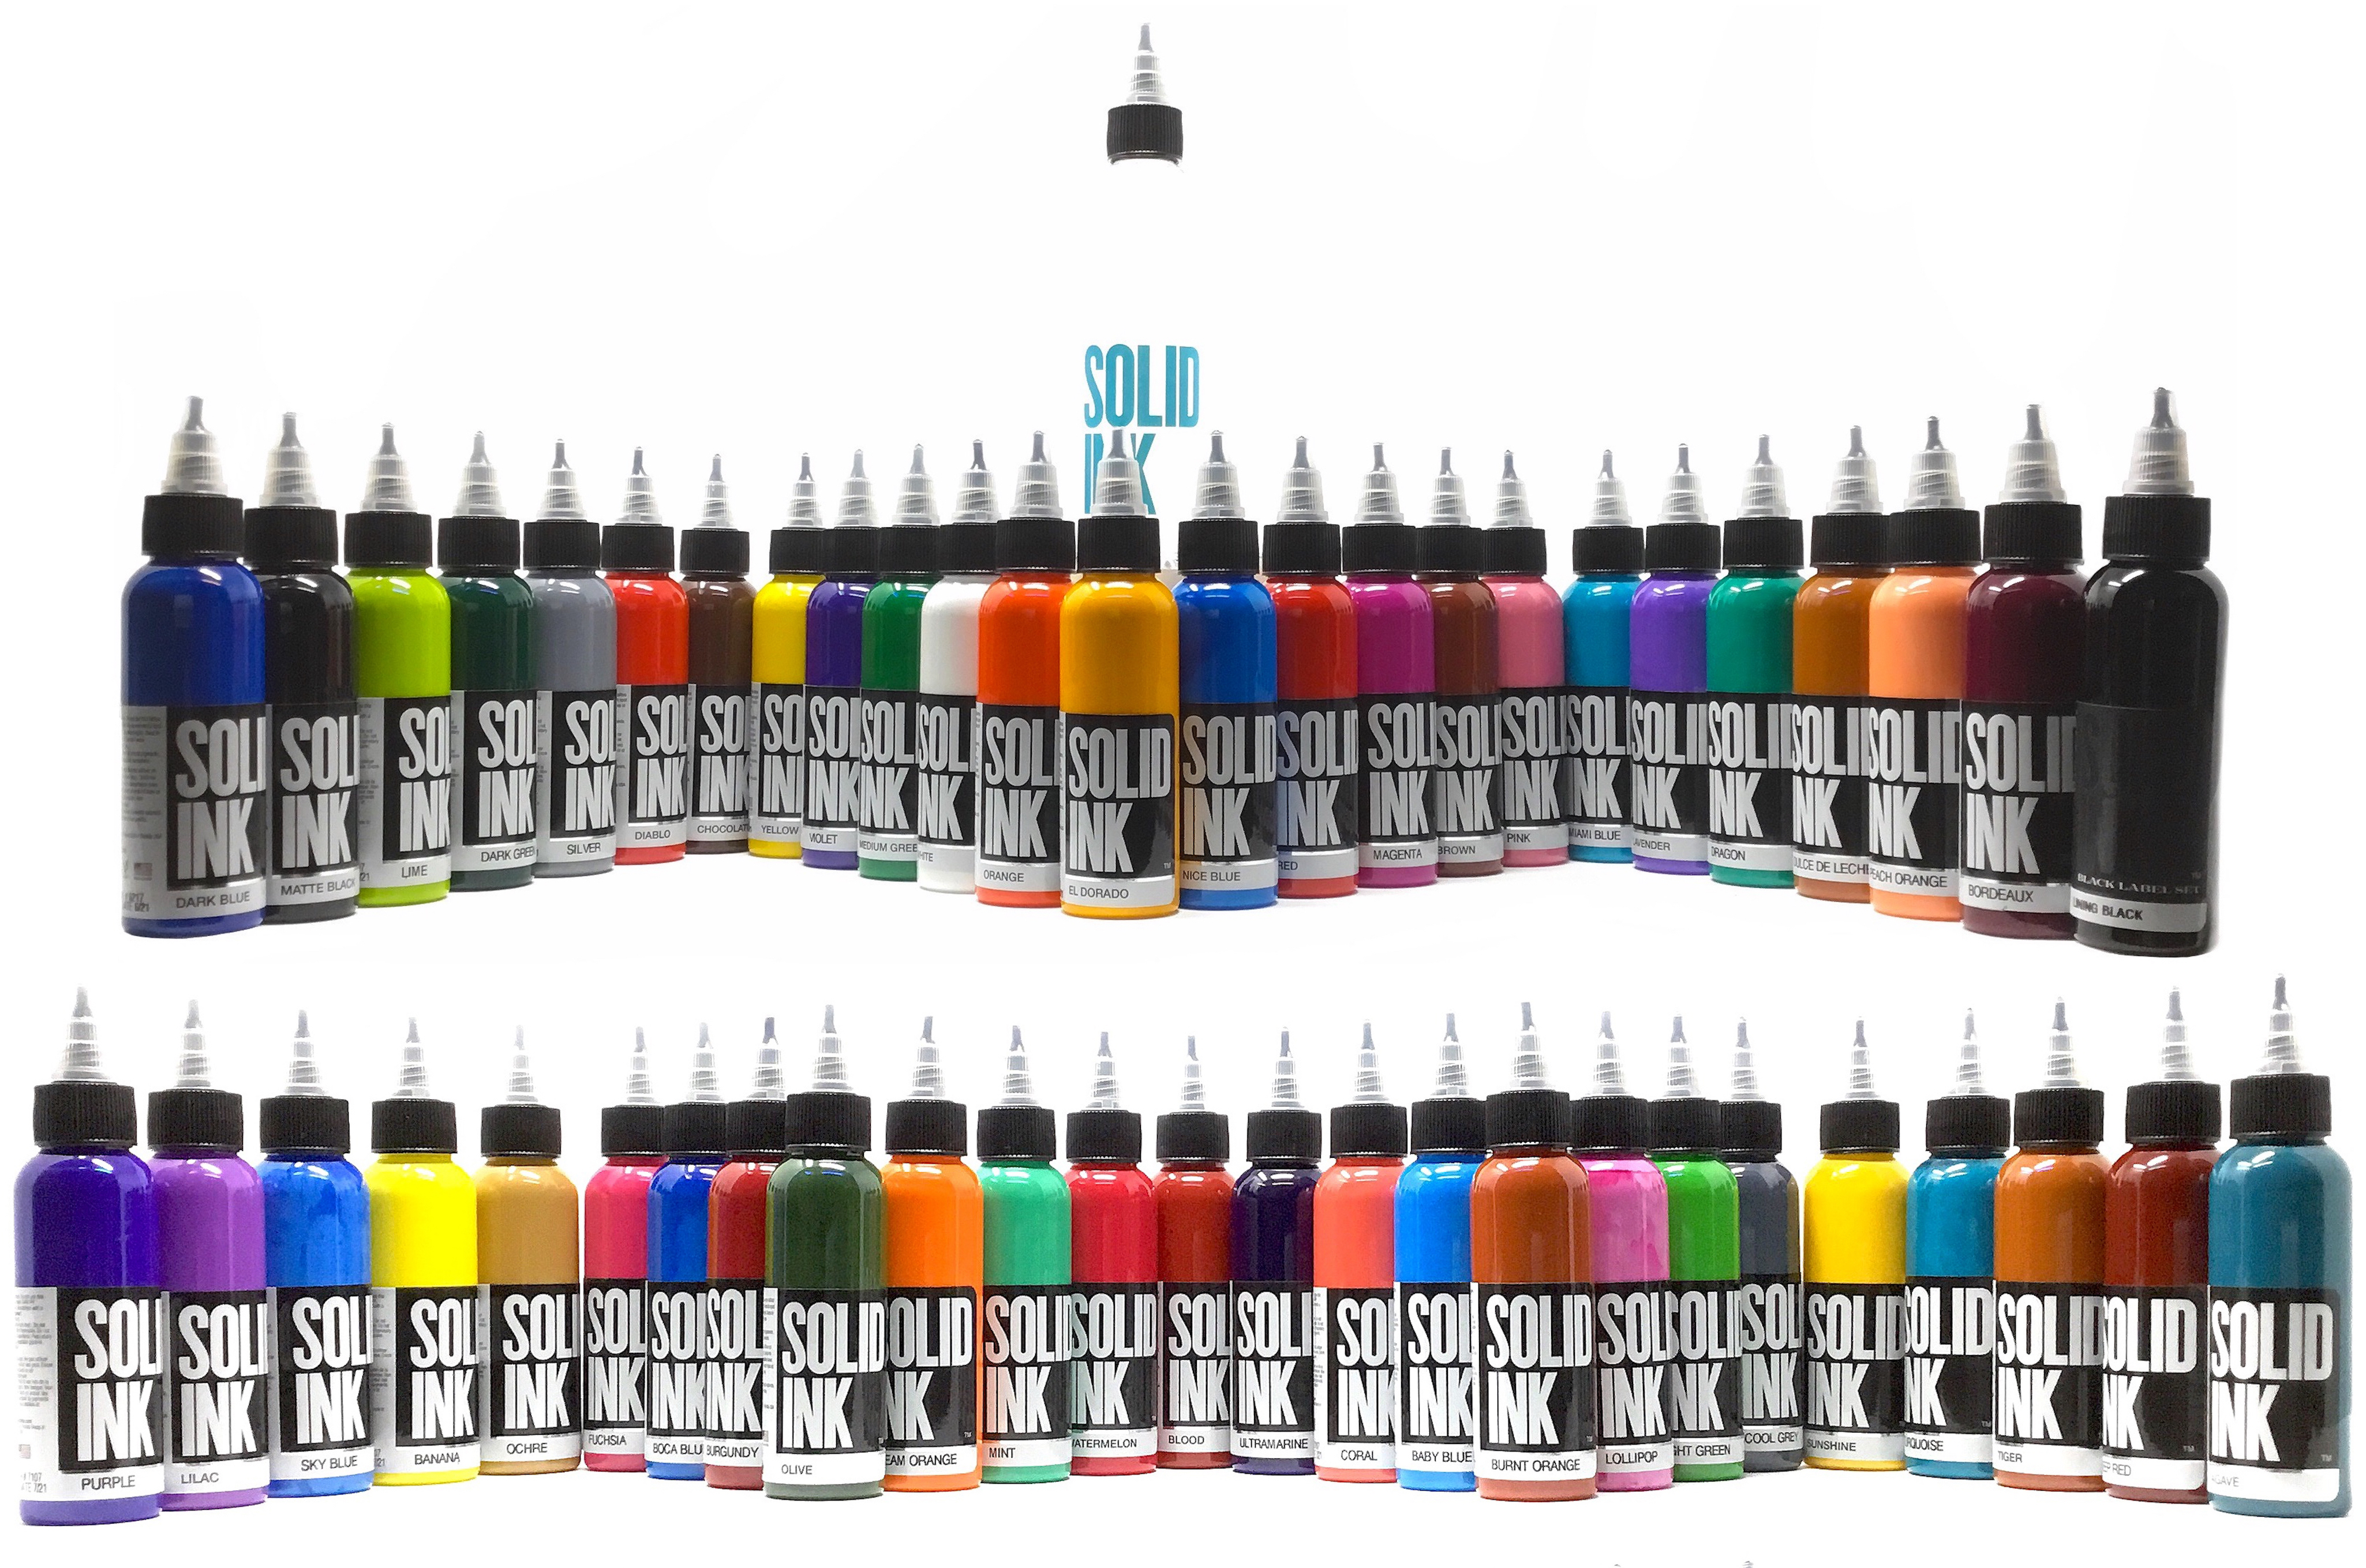 Solid Tattoo Ink 50 Color Deluxe Set in 1oz bottles